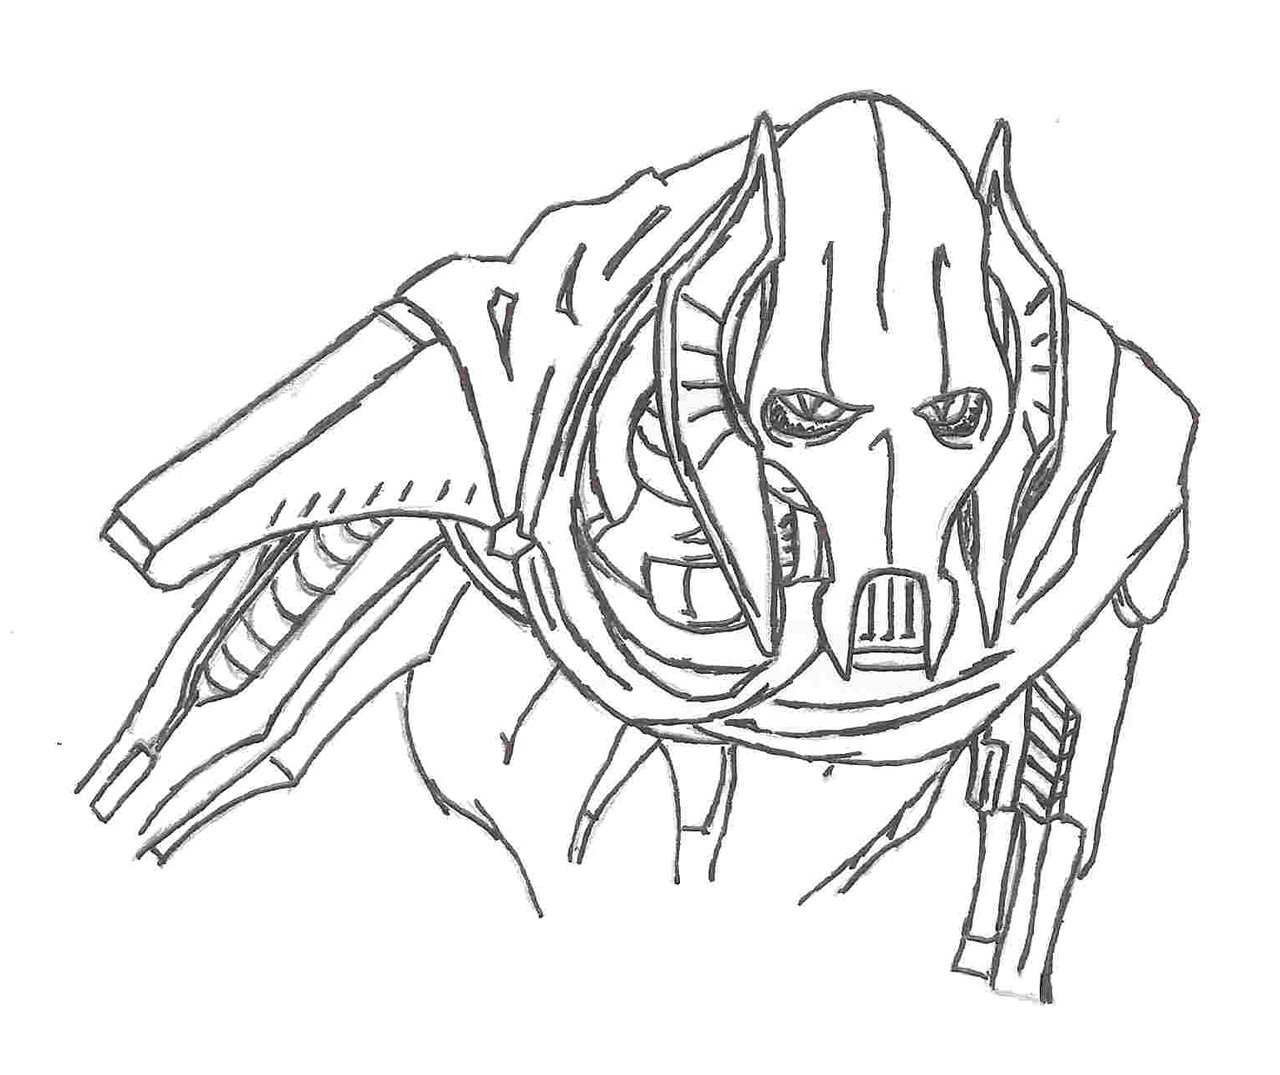 General Grievous Drawing at GetDrawings.com | Free for personal use ...